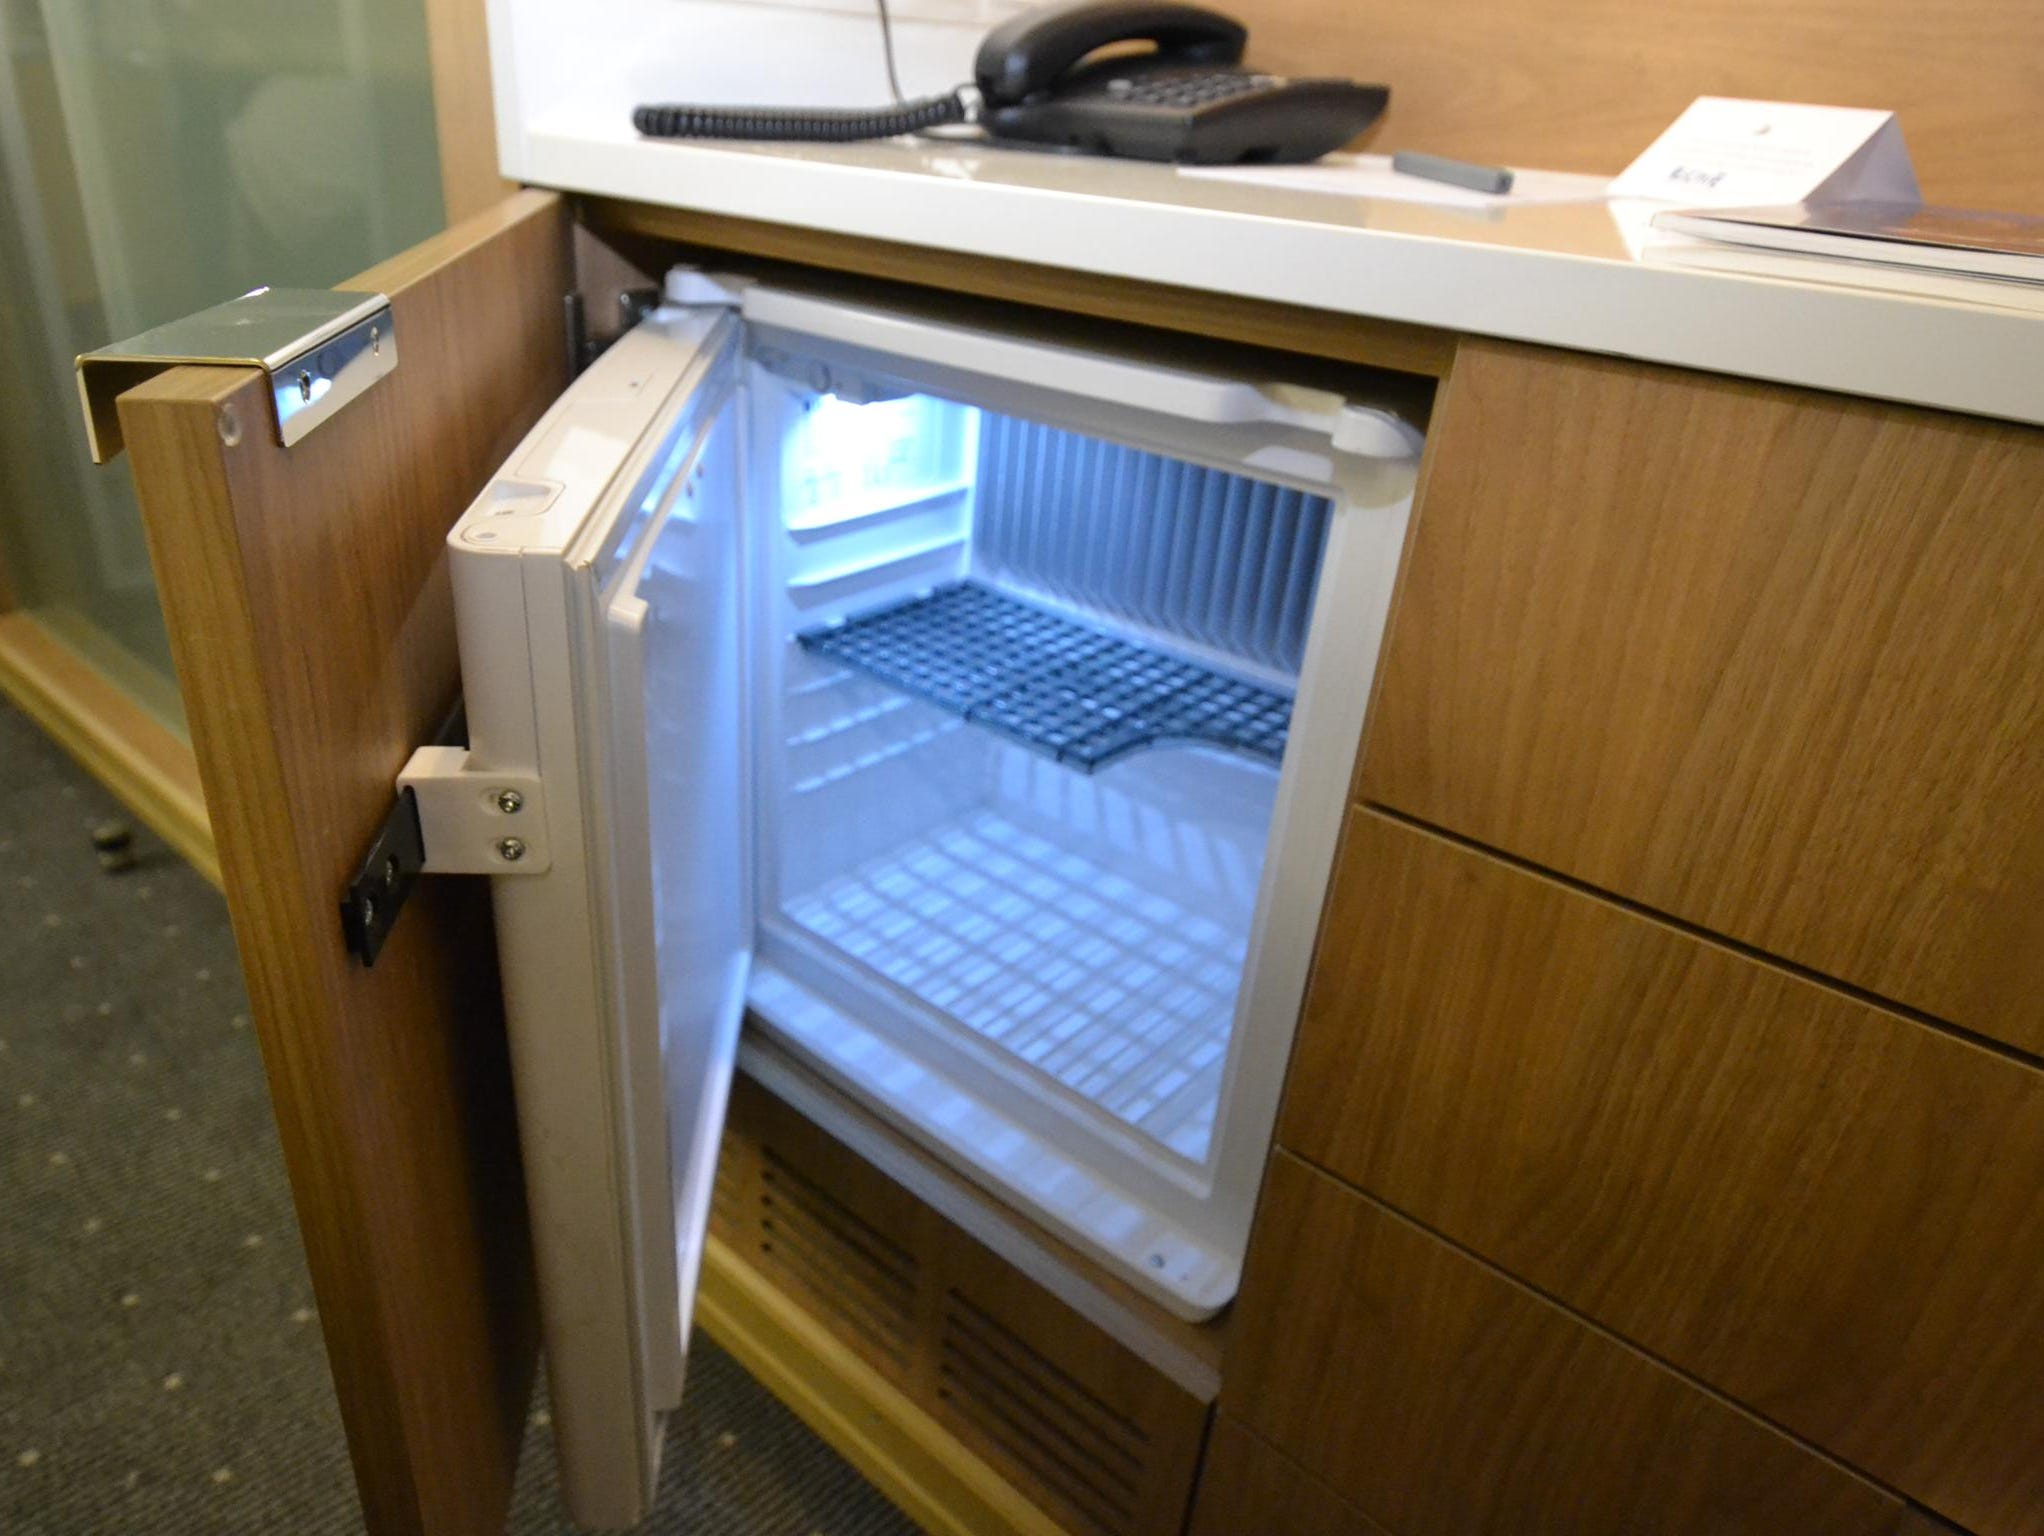 Each French Balcony Stateroom has a miniature refrigerator.